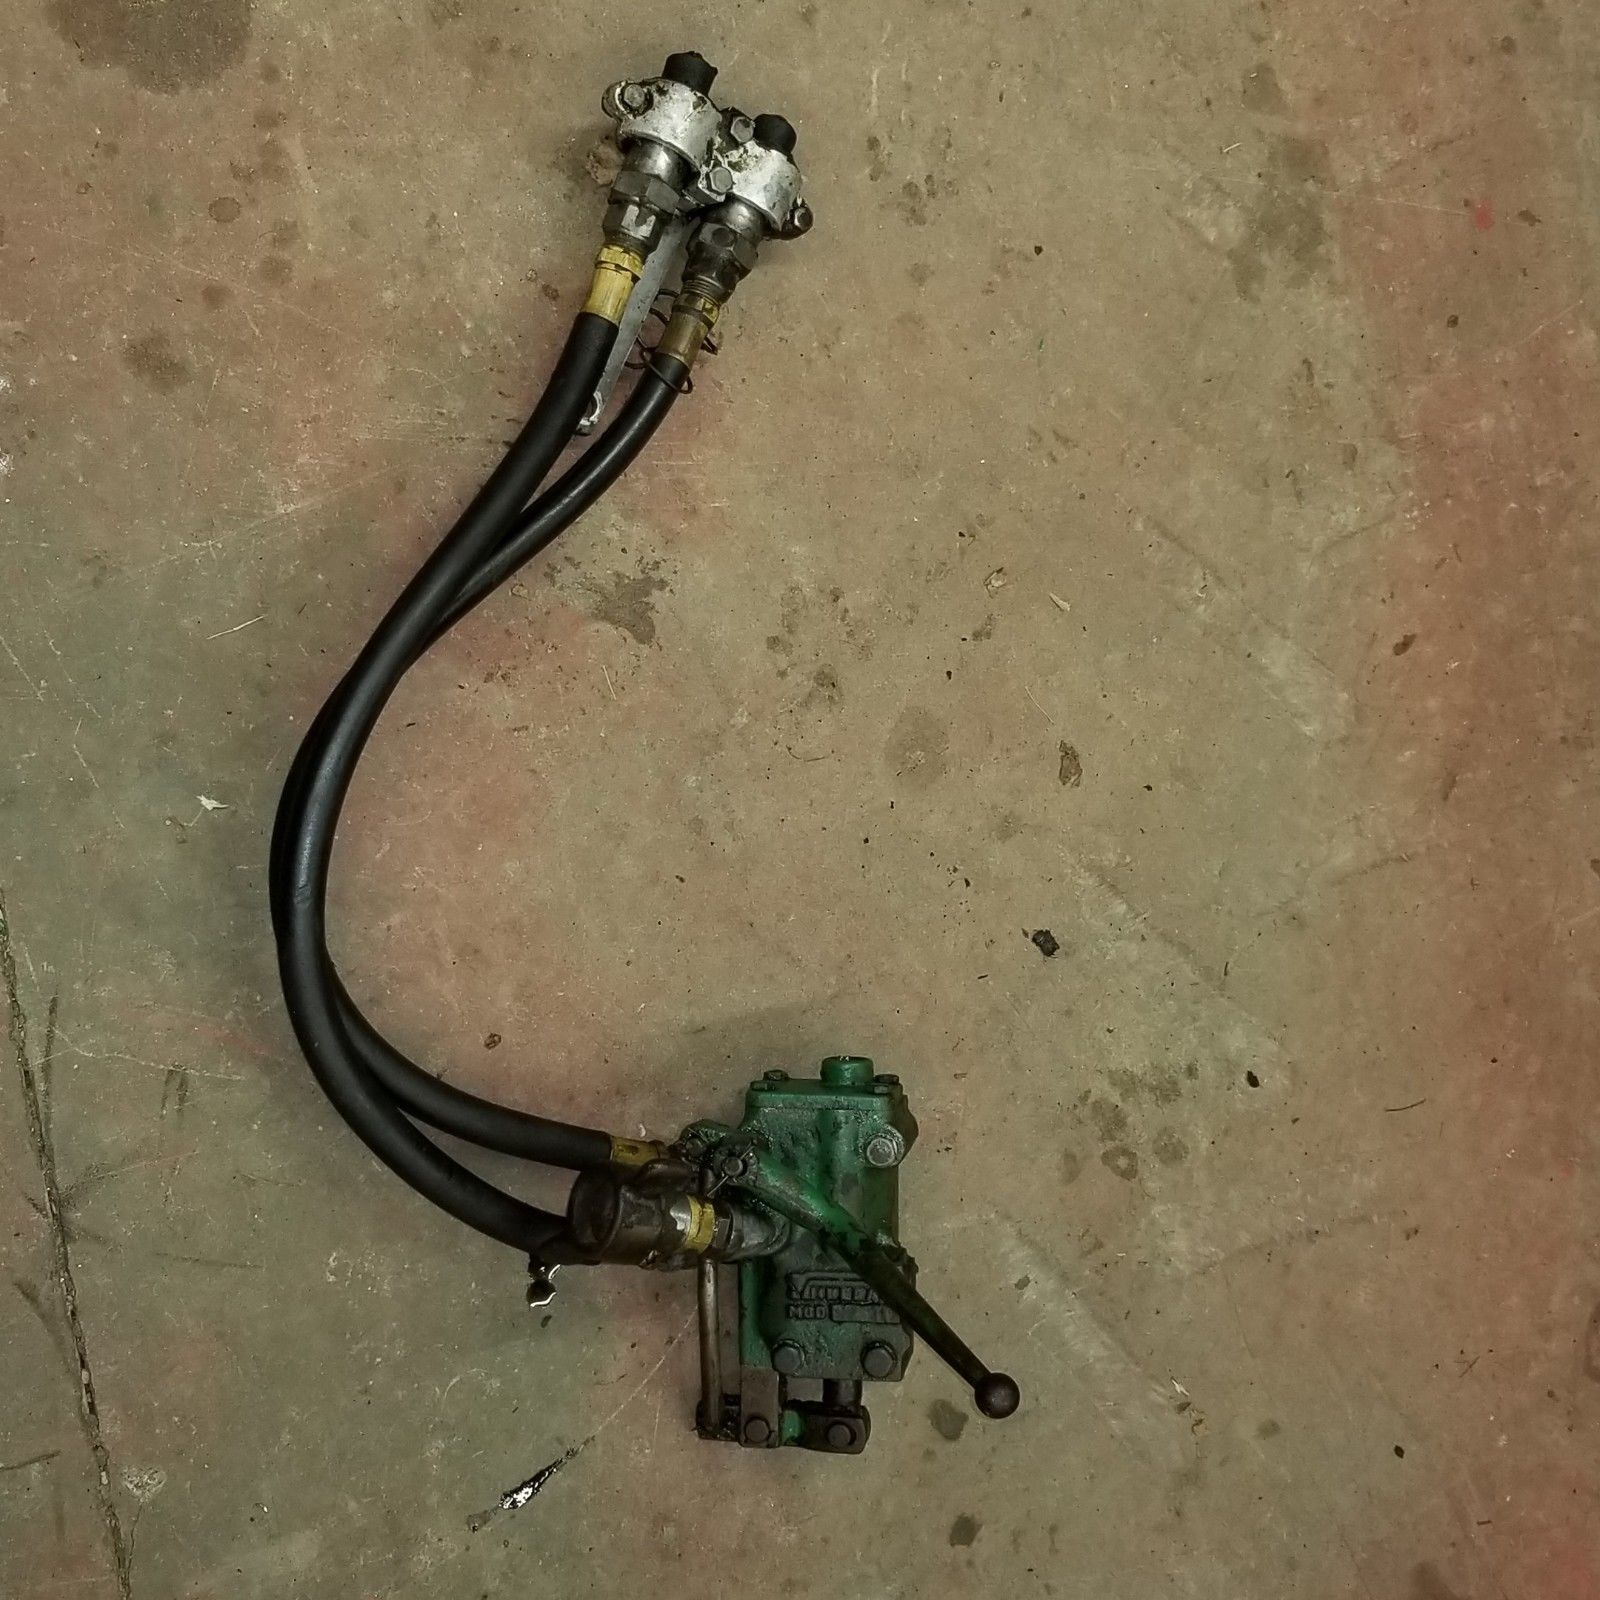 Oliver Tractor Auxilliary Hydraulic Valve Super 55 Or 550 Stuff New Holland Super  55 Oliver Super 55 Wiring